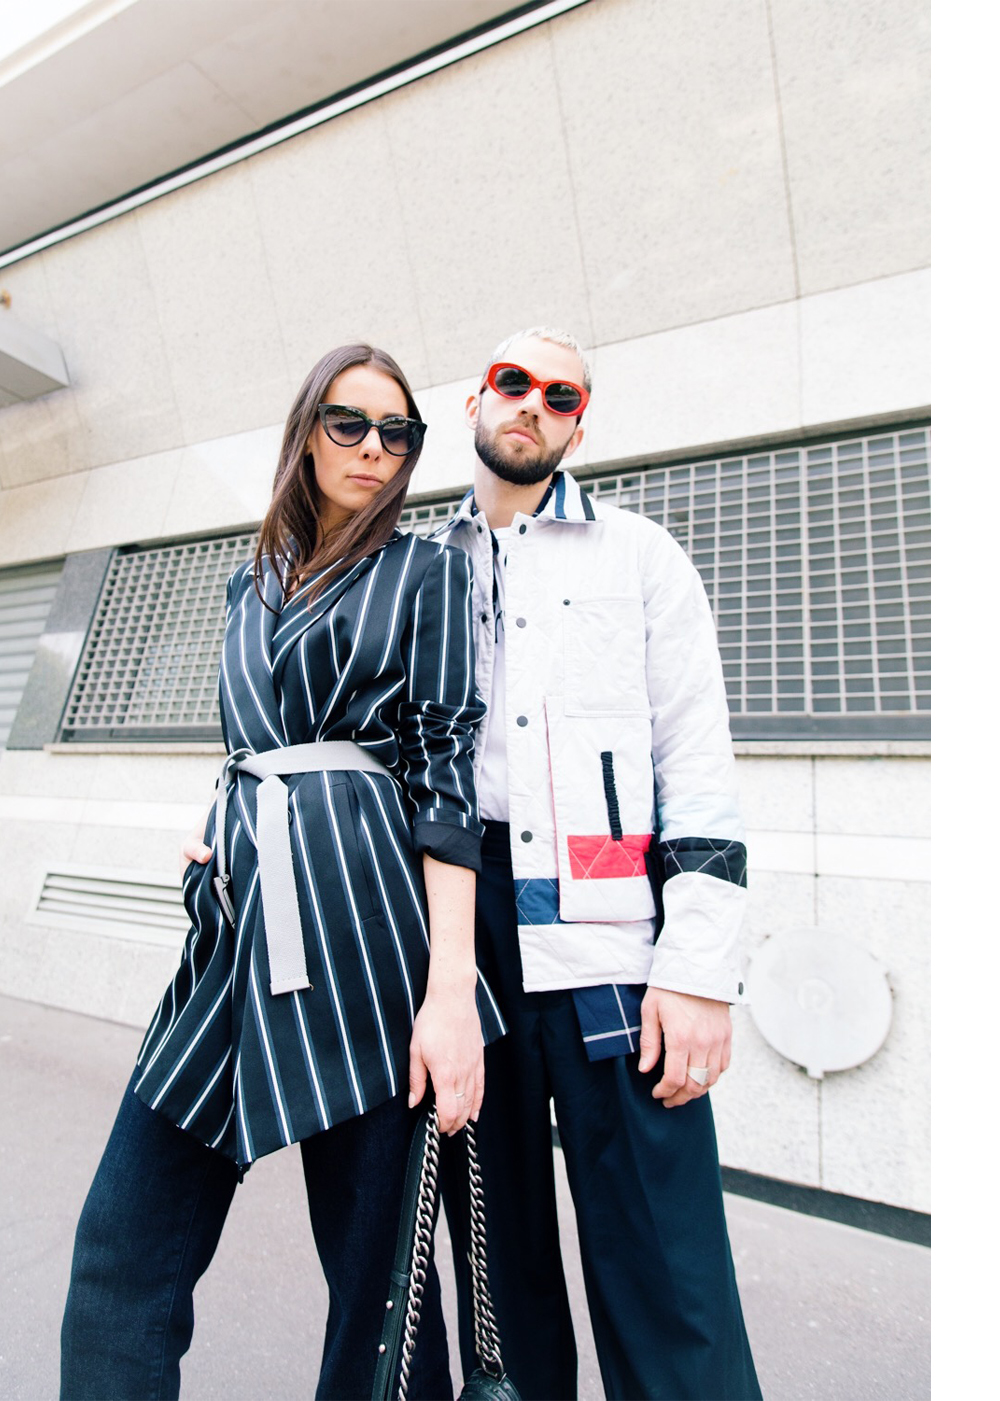 jaimetoutcheztoi j'aime tout chez toi fashion couple mode blogger paris